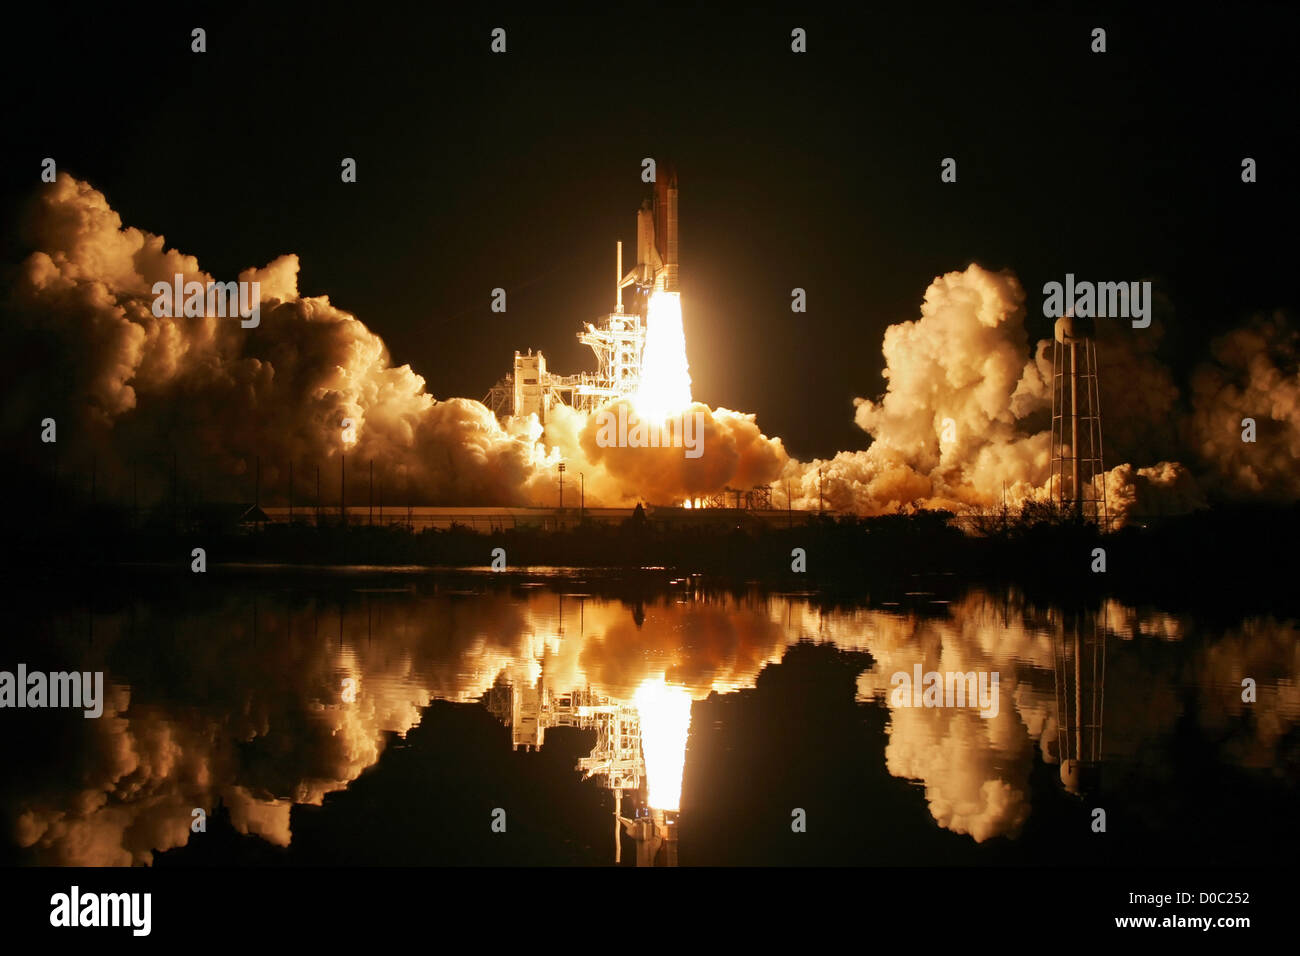 Endeavour Launches on STS-123 - Stock Image